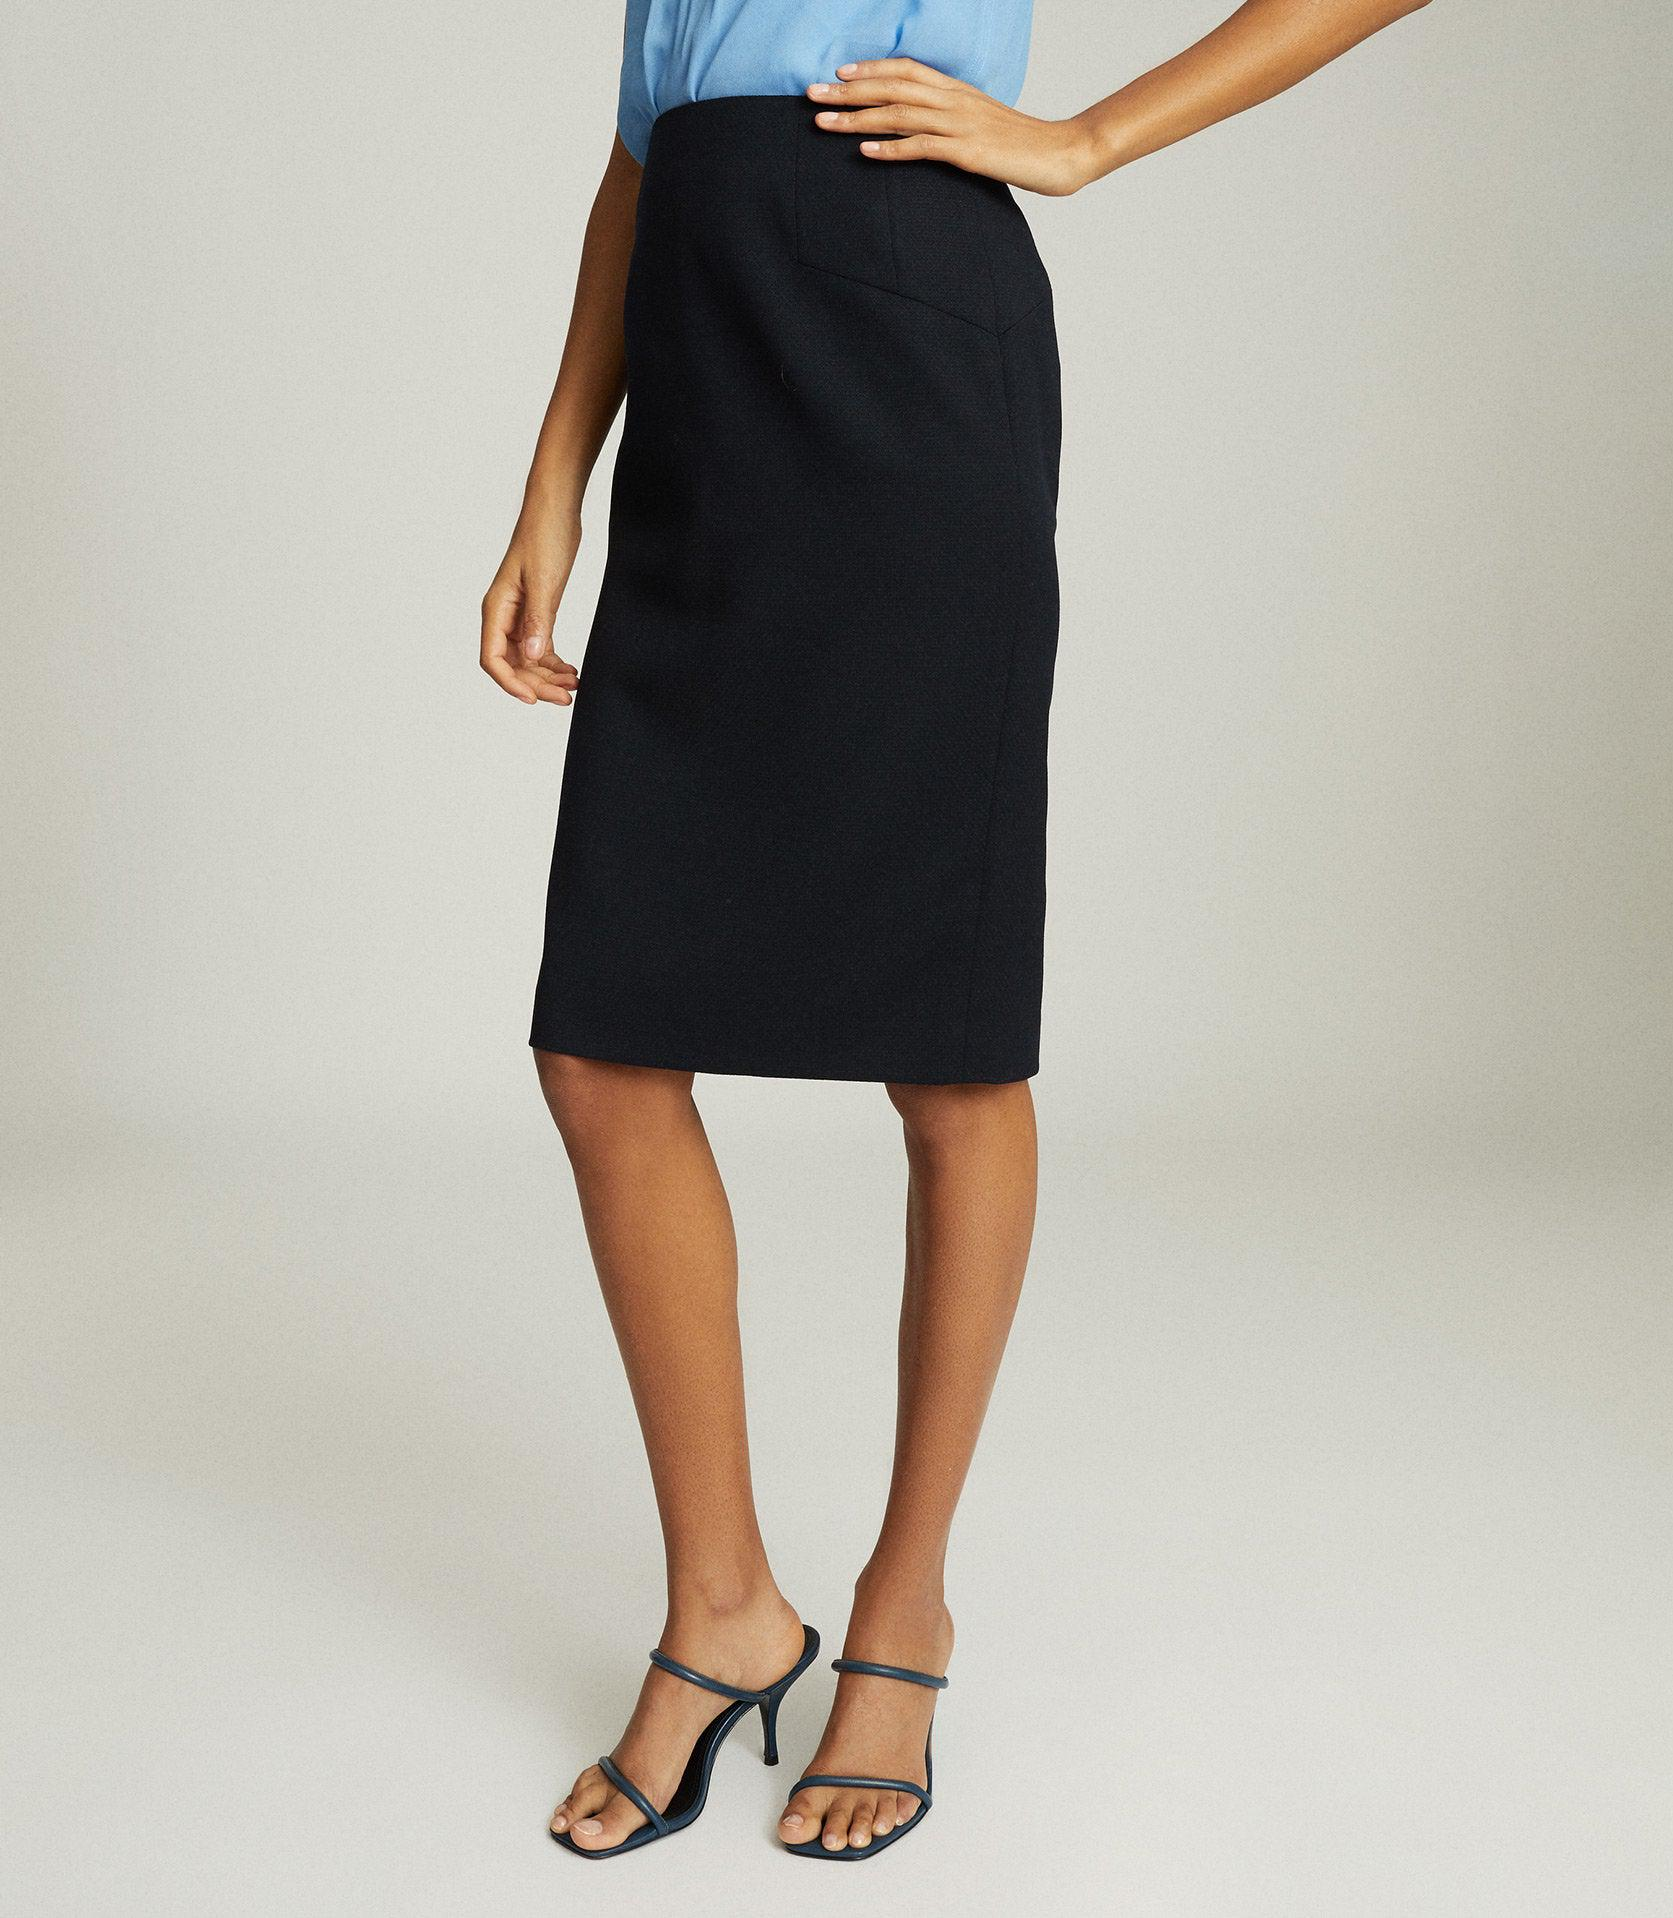 HAYES - TAILORED PENCIL SKIRT 1